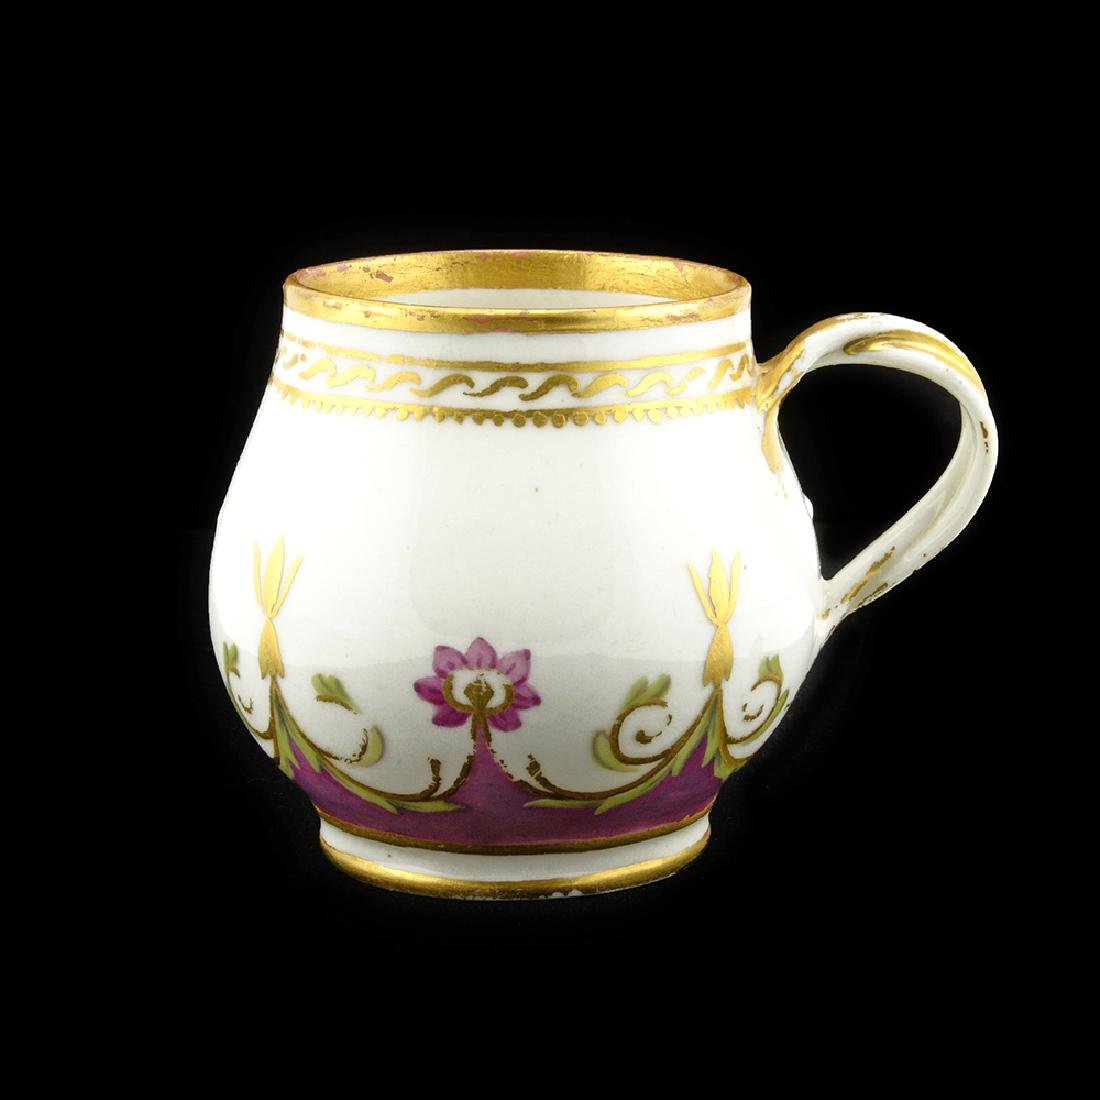 Russian Imperial Arabesque porcelain service ice cup